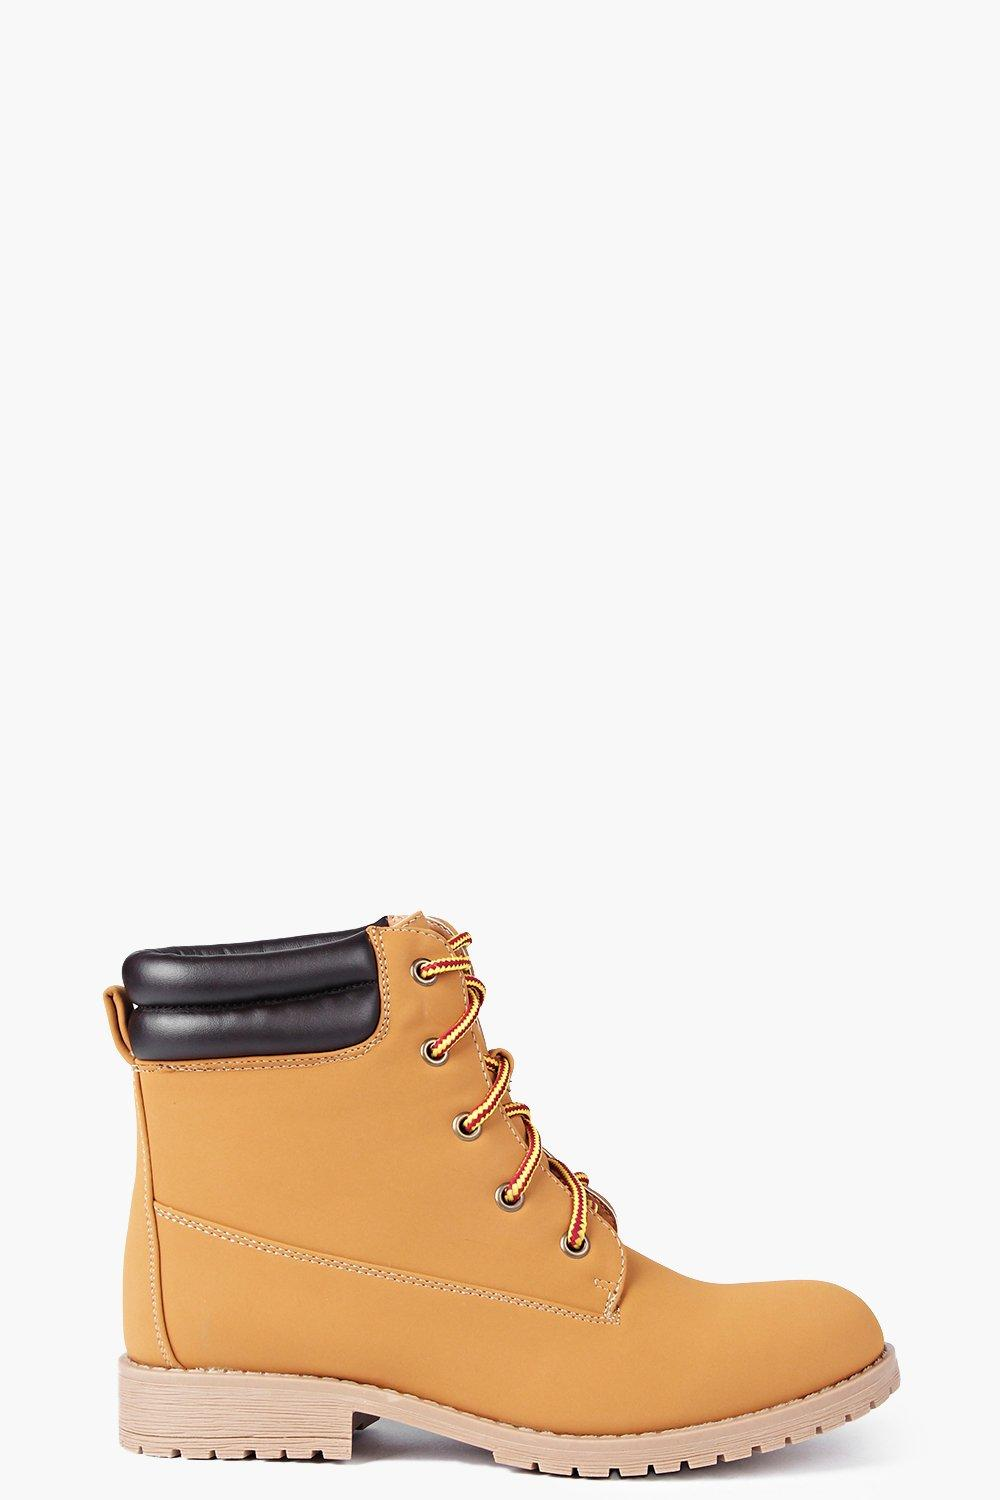 Tilly Lace Up Hiker Boot